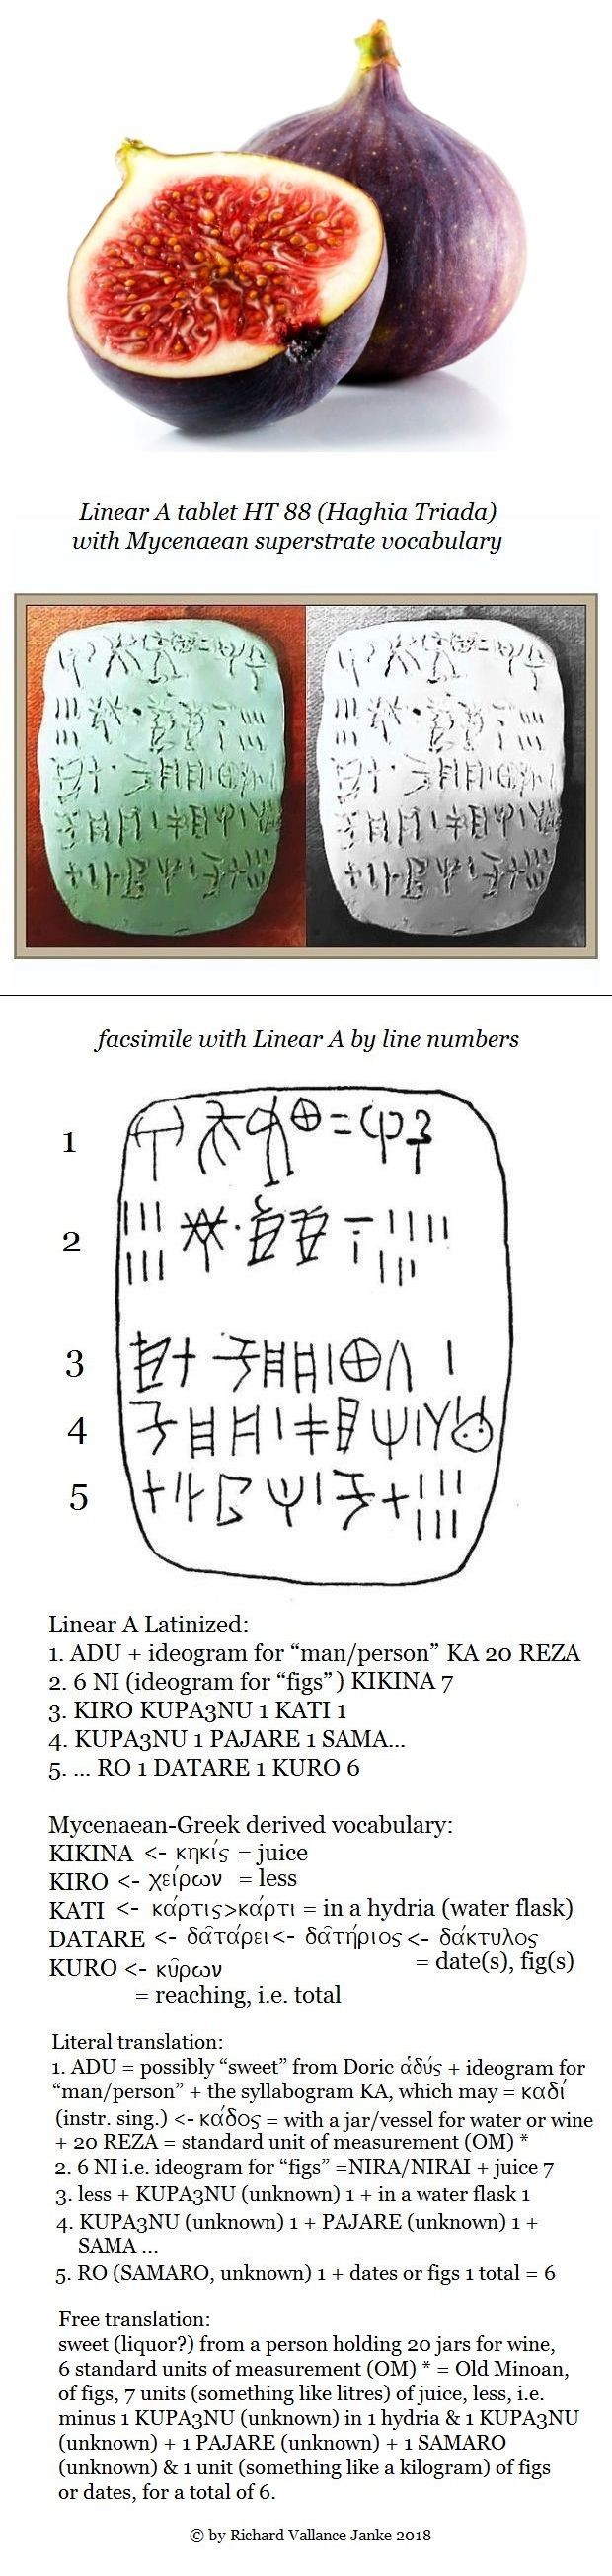 Linear A tablet HT 88 figs